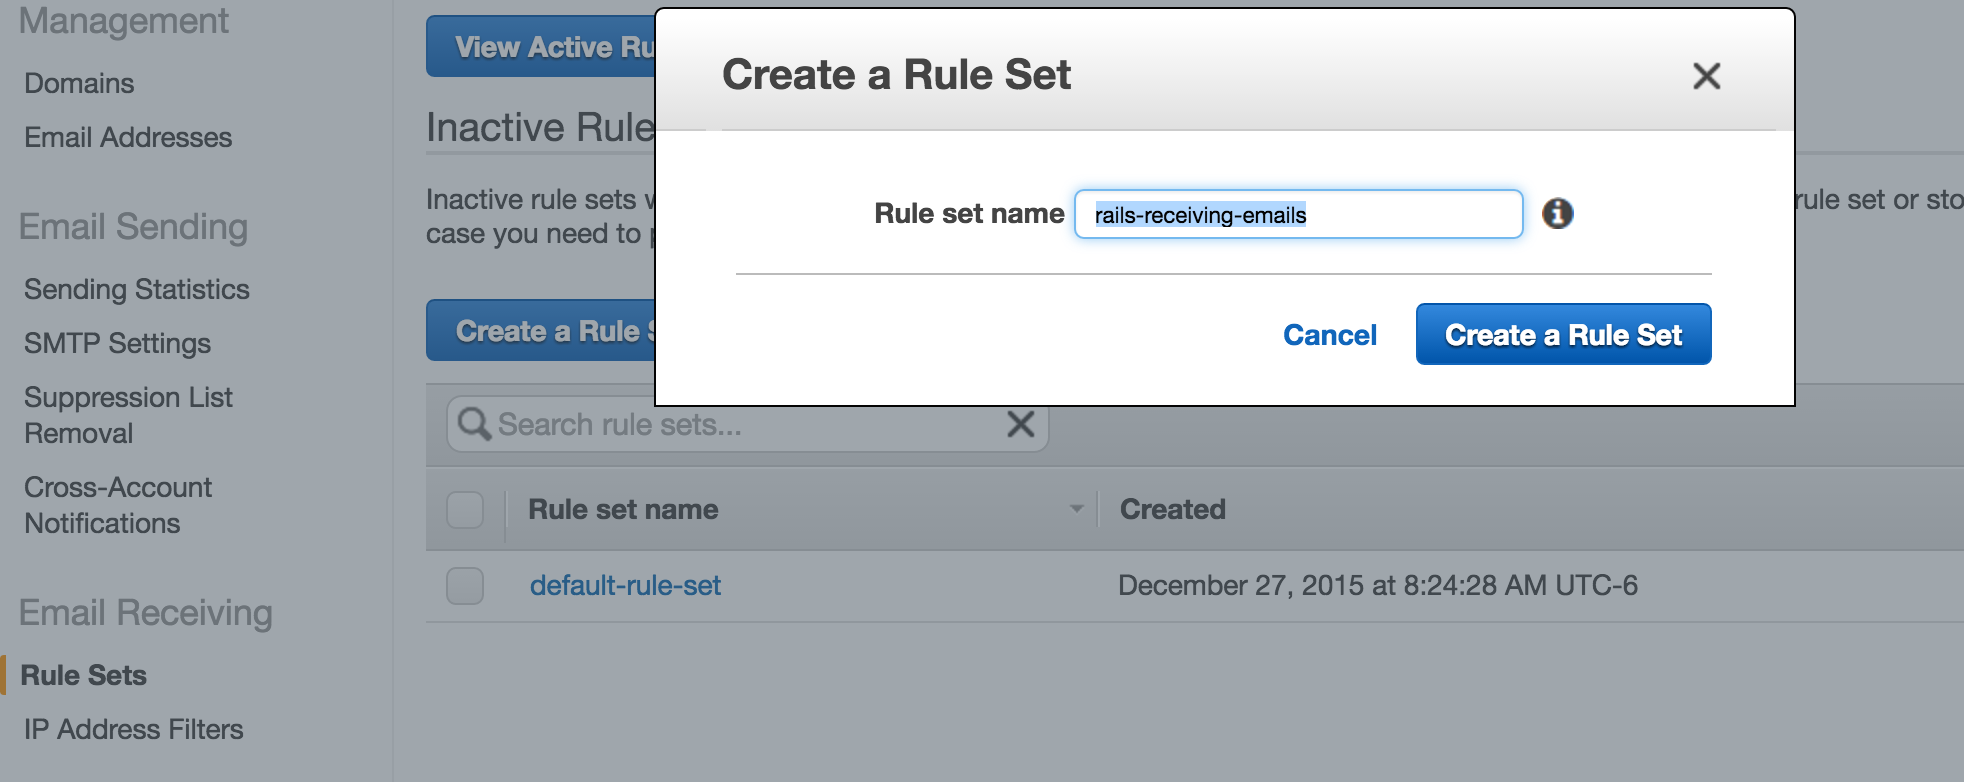 Create Rule Set